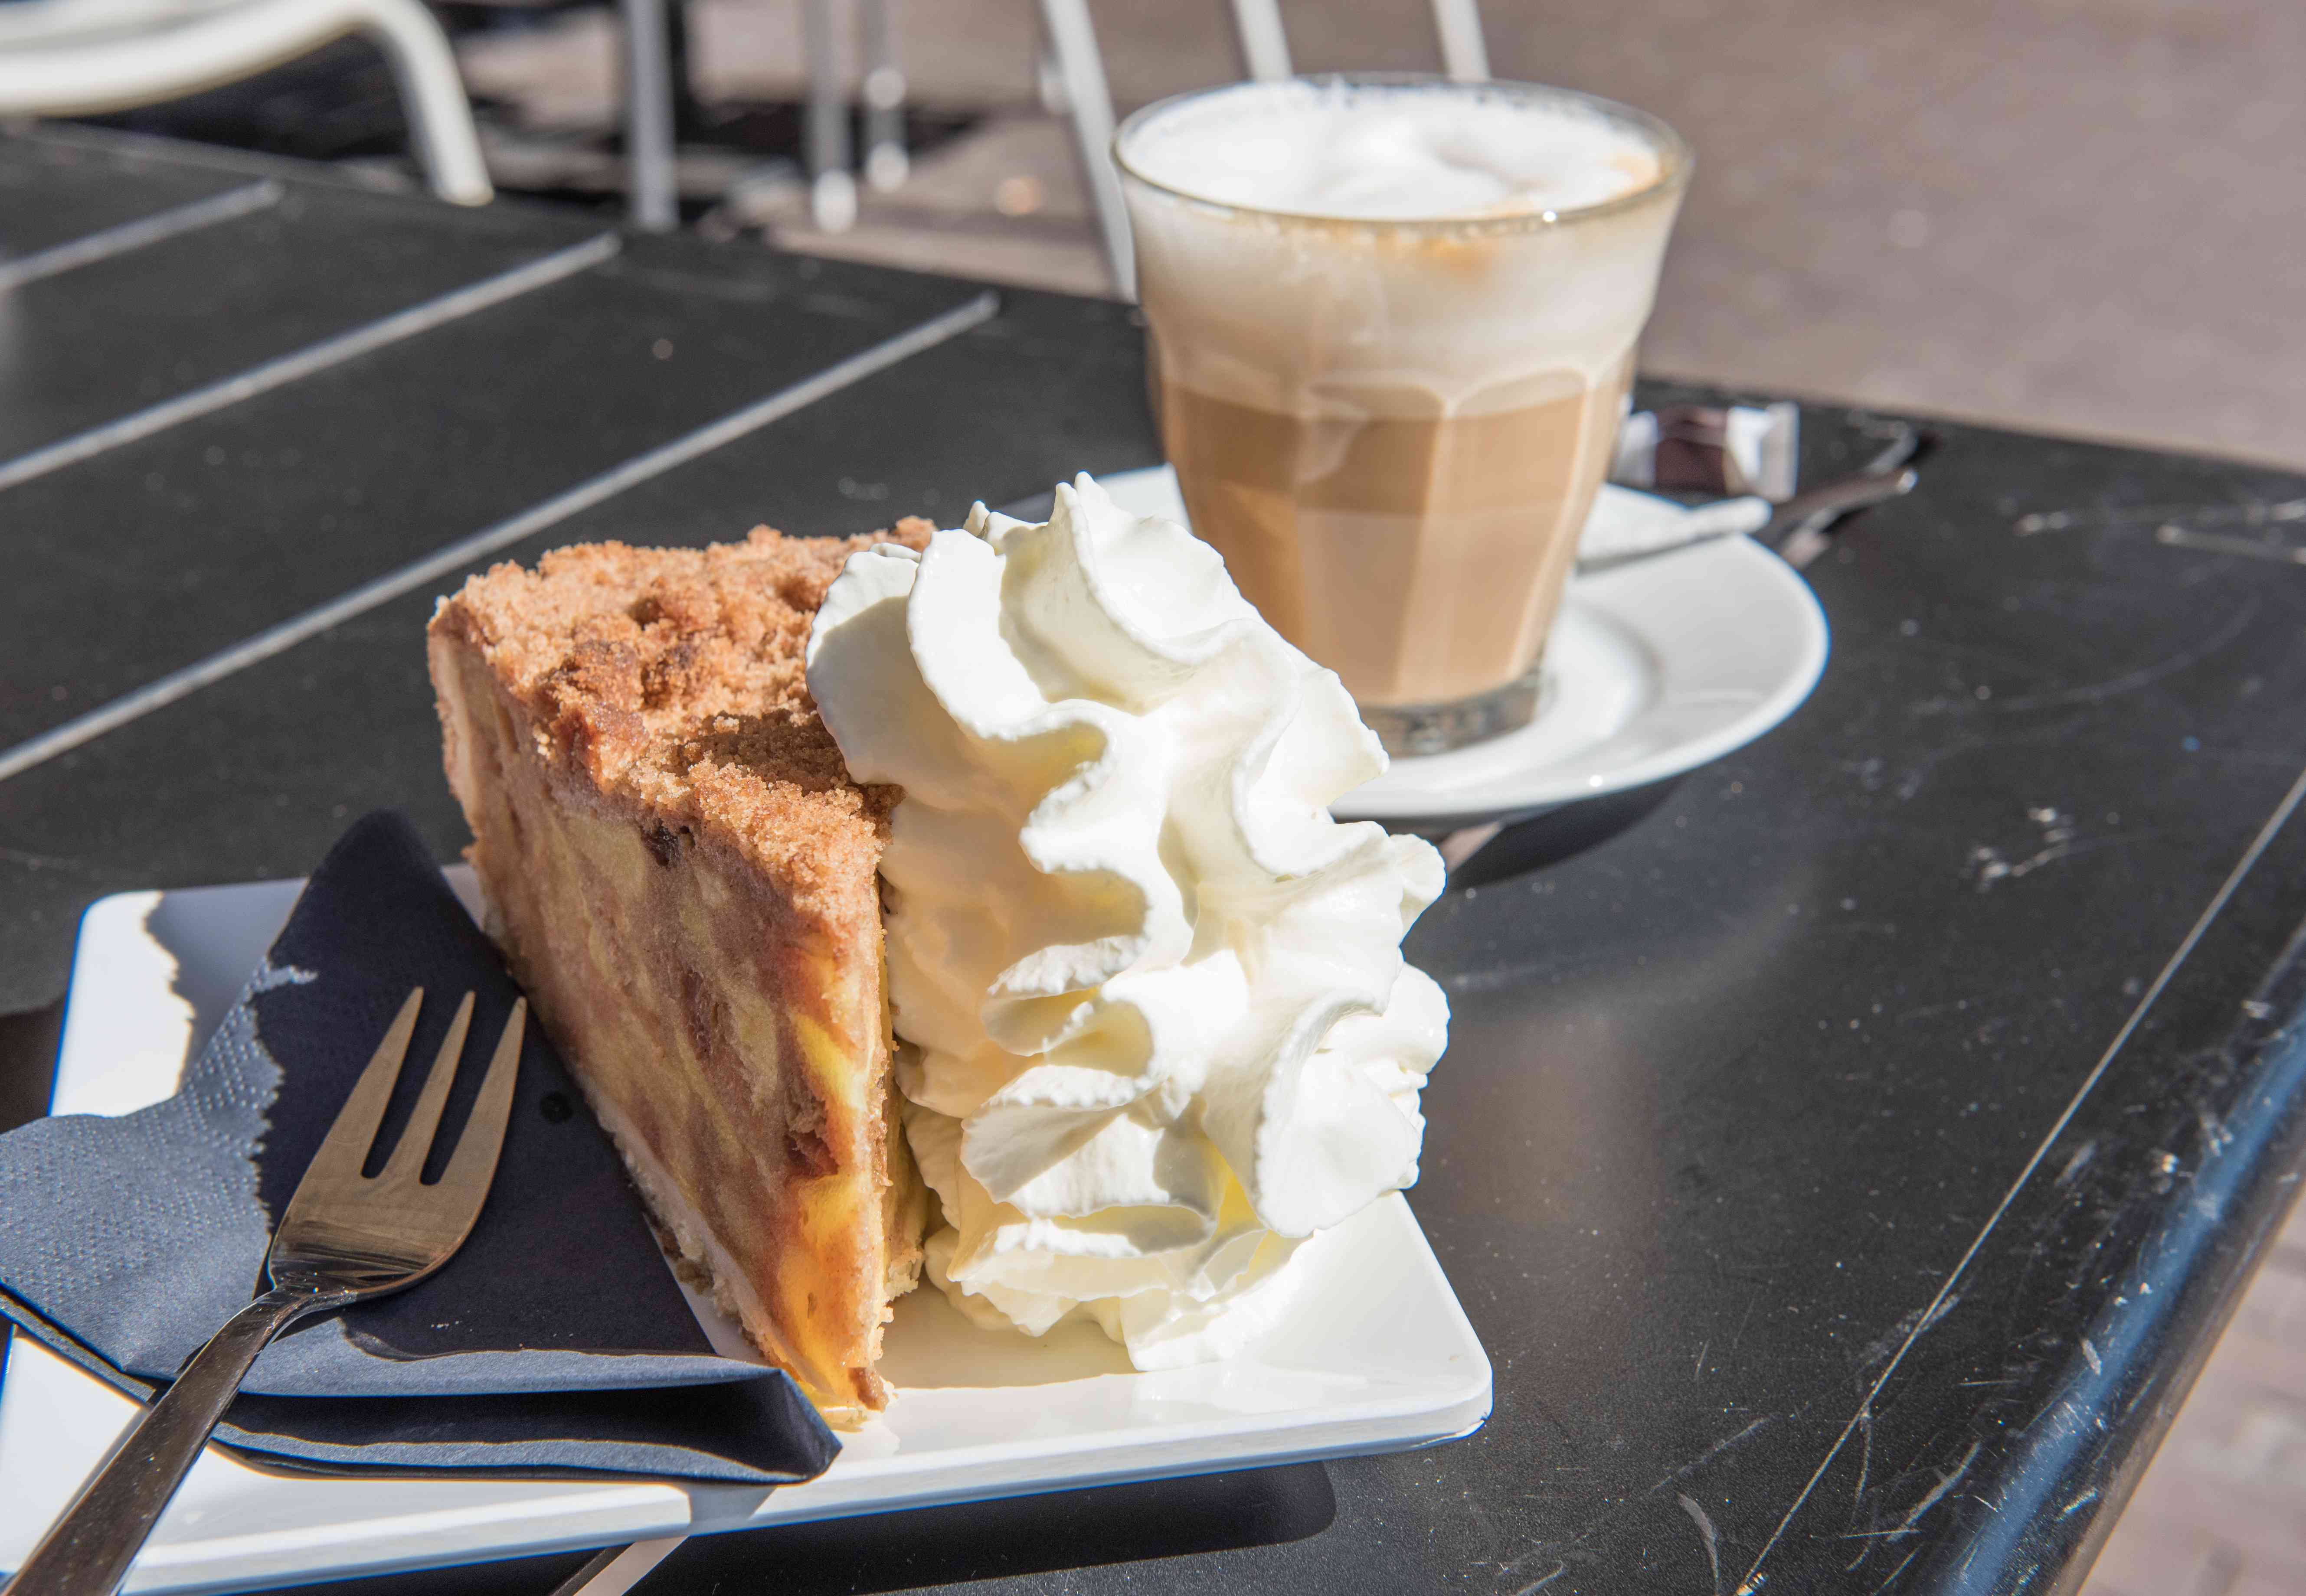 Apple pie and latte